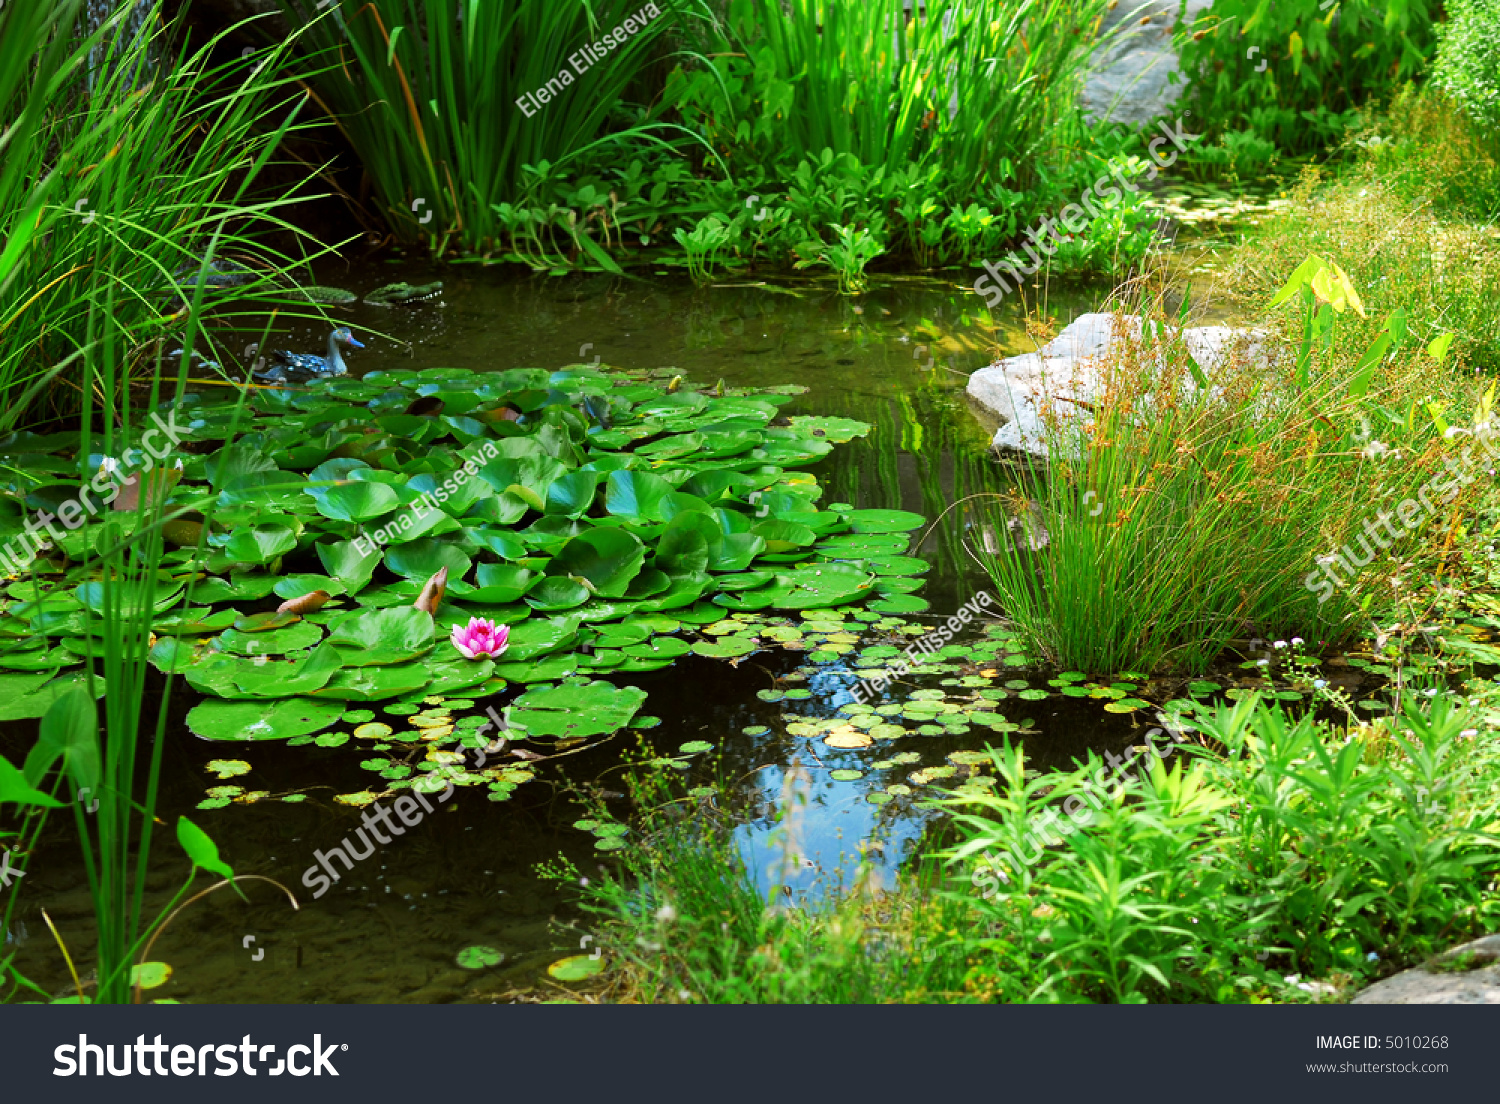 Pond Landscaping With Aquatic Plants And Water Lilies Stock Photo 5010268 Shutterstock